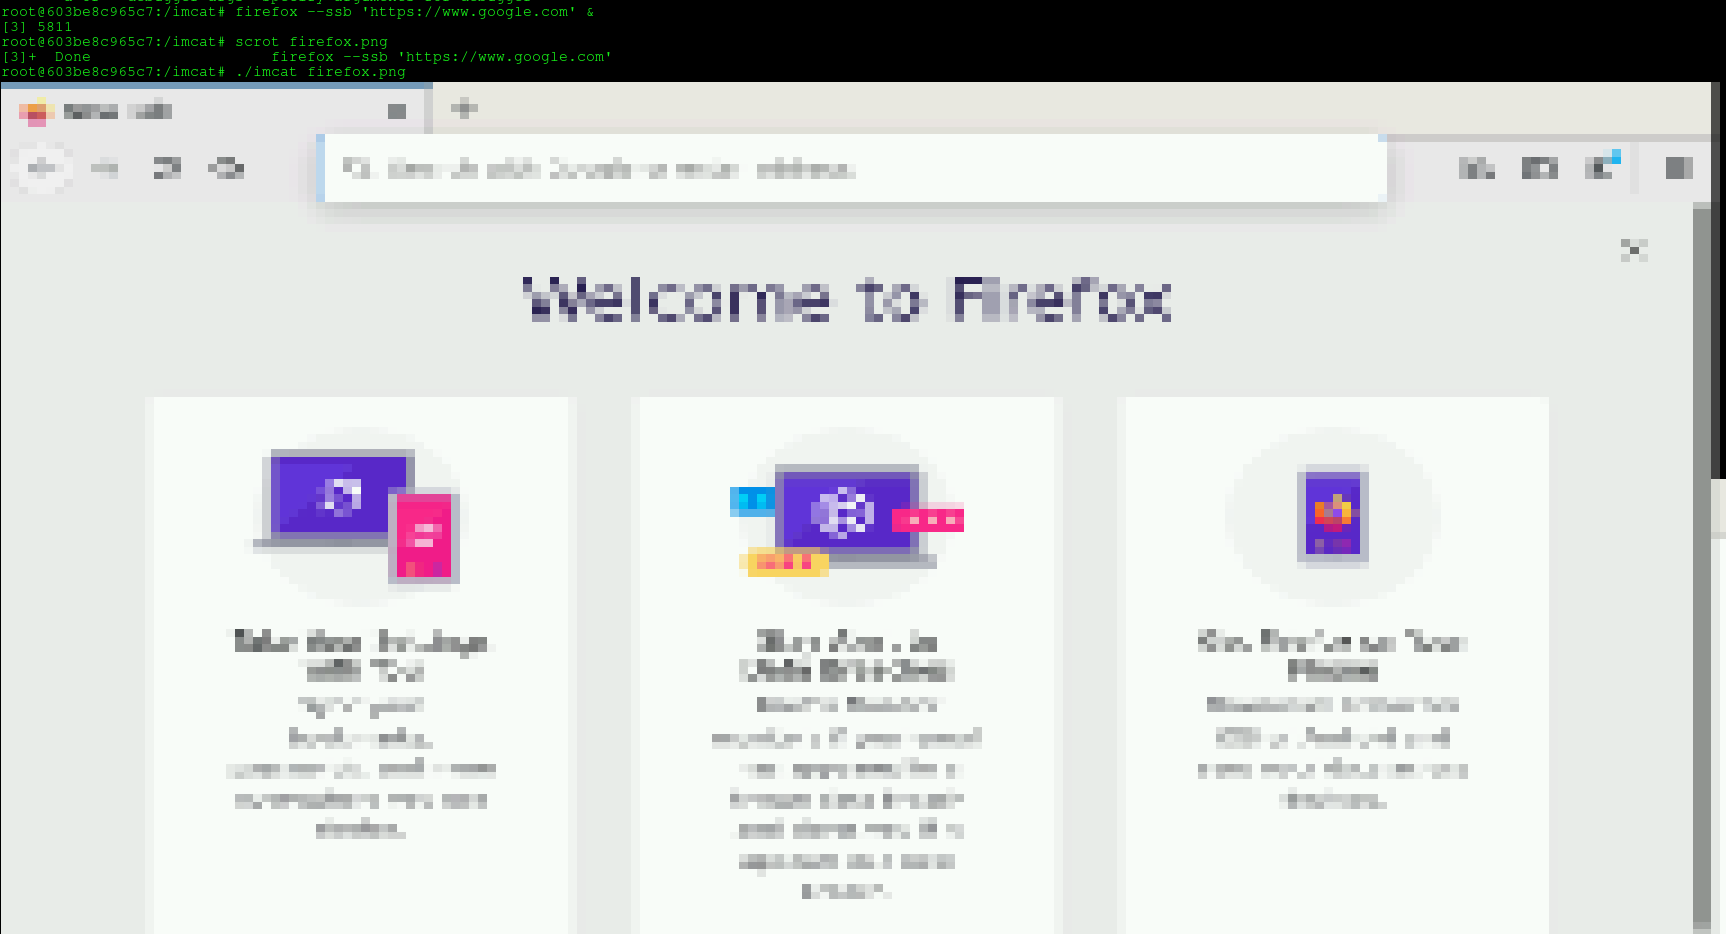 firefox screenshot inside docker container